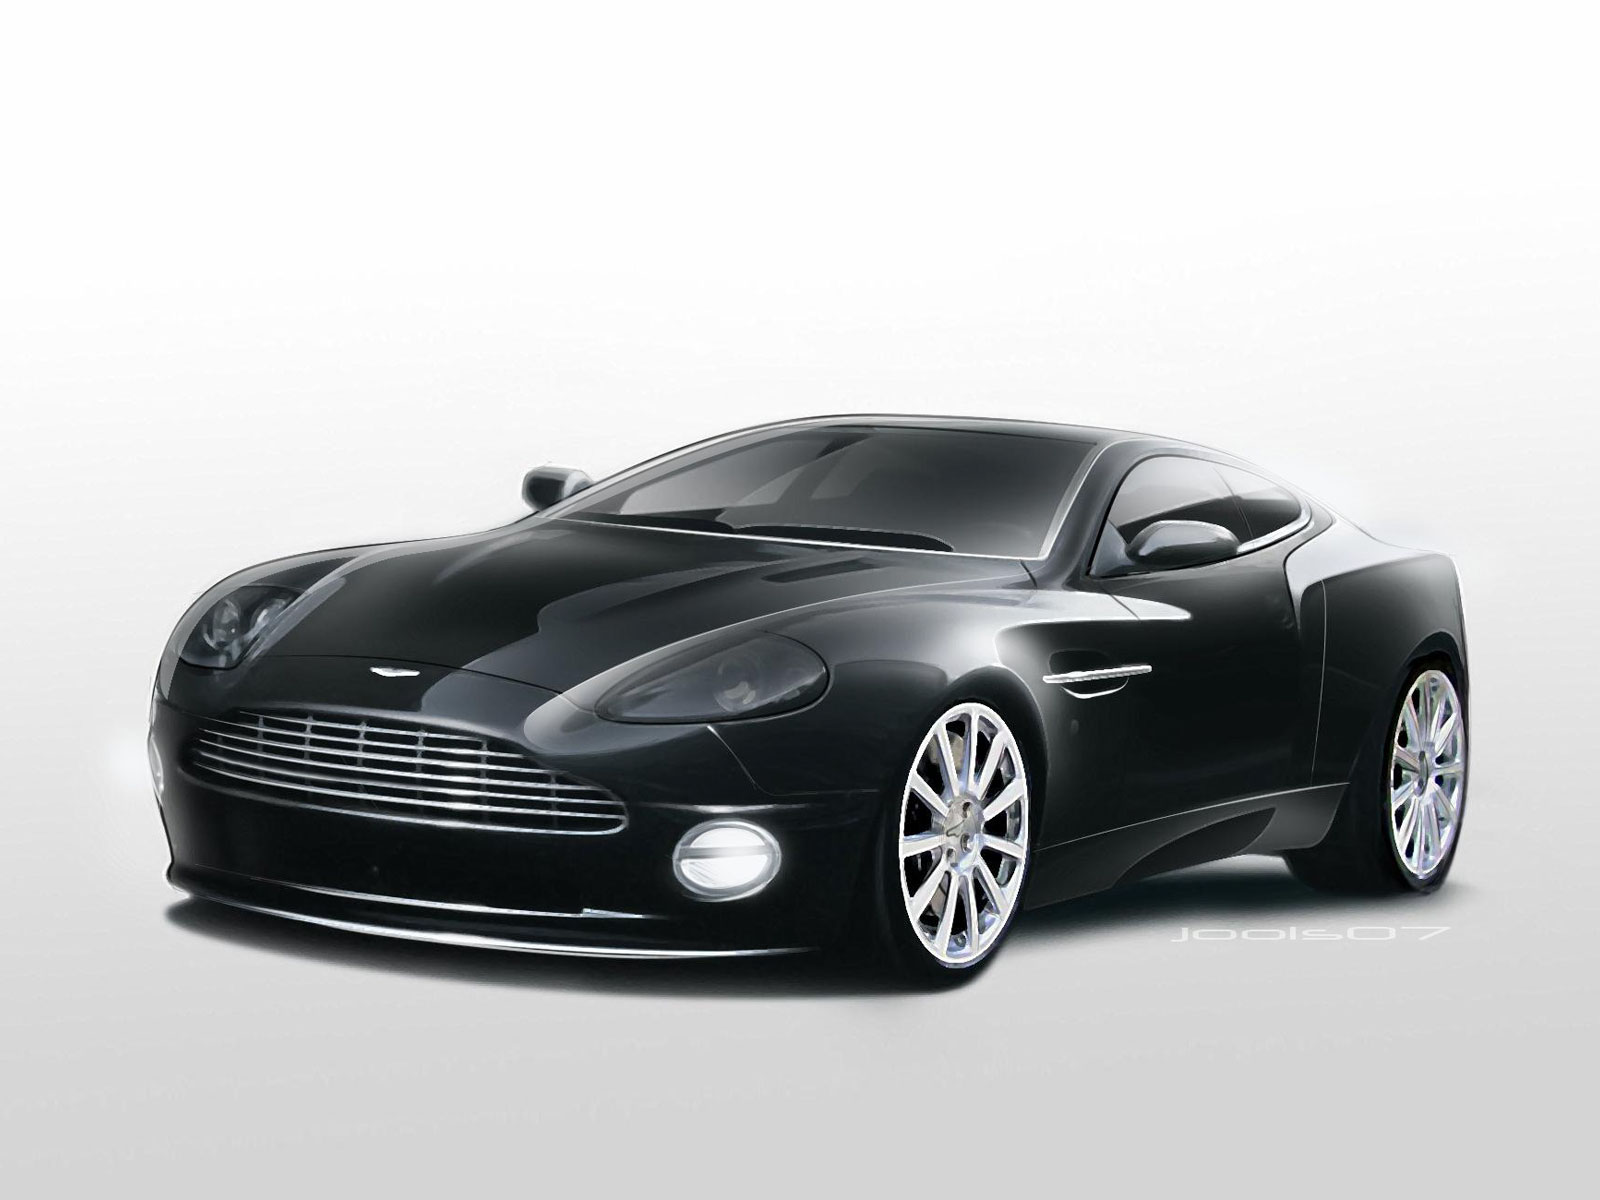 2007 aston martin vanquish s ultimate edition. Black Bedroom Furniture Sets. Home Design Ideas